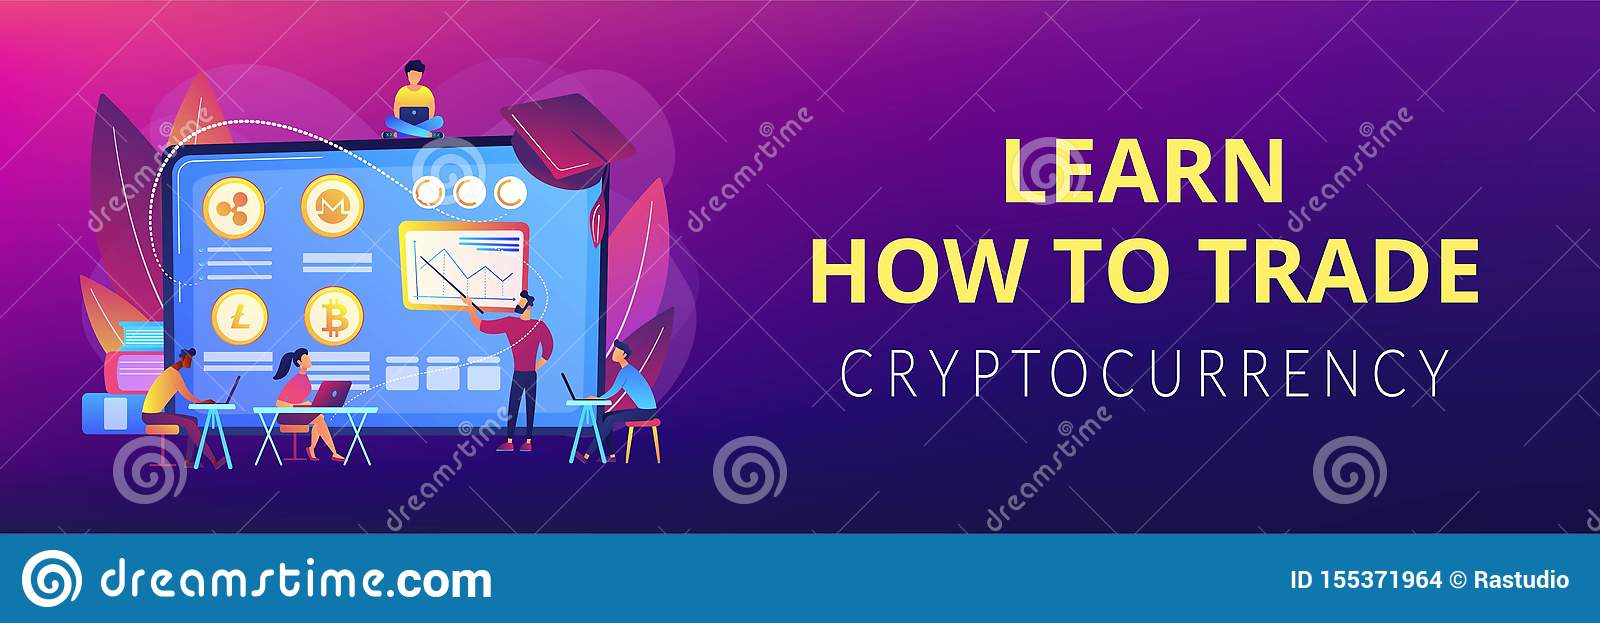 cryptocurrency trading course free